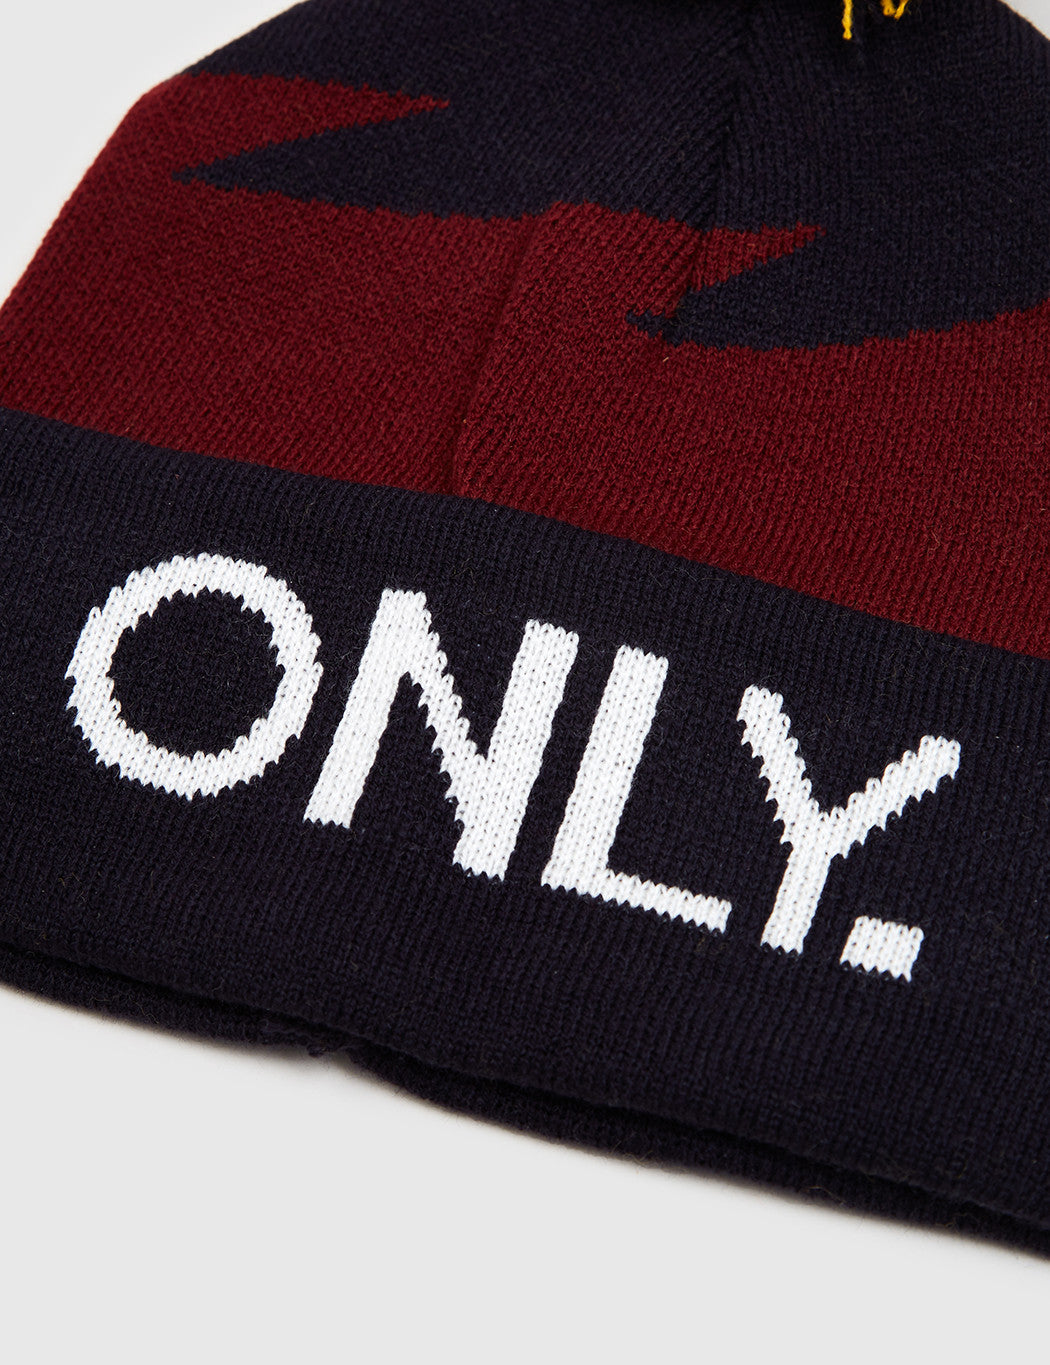 Only NY Boltz Beanie Hat - Navy/Burgundy